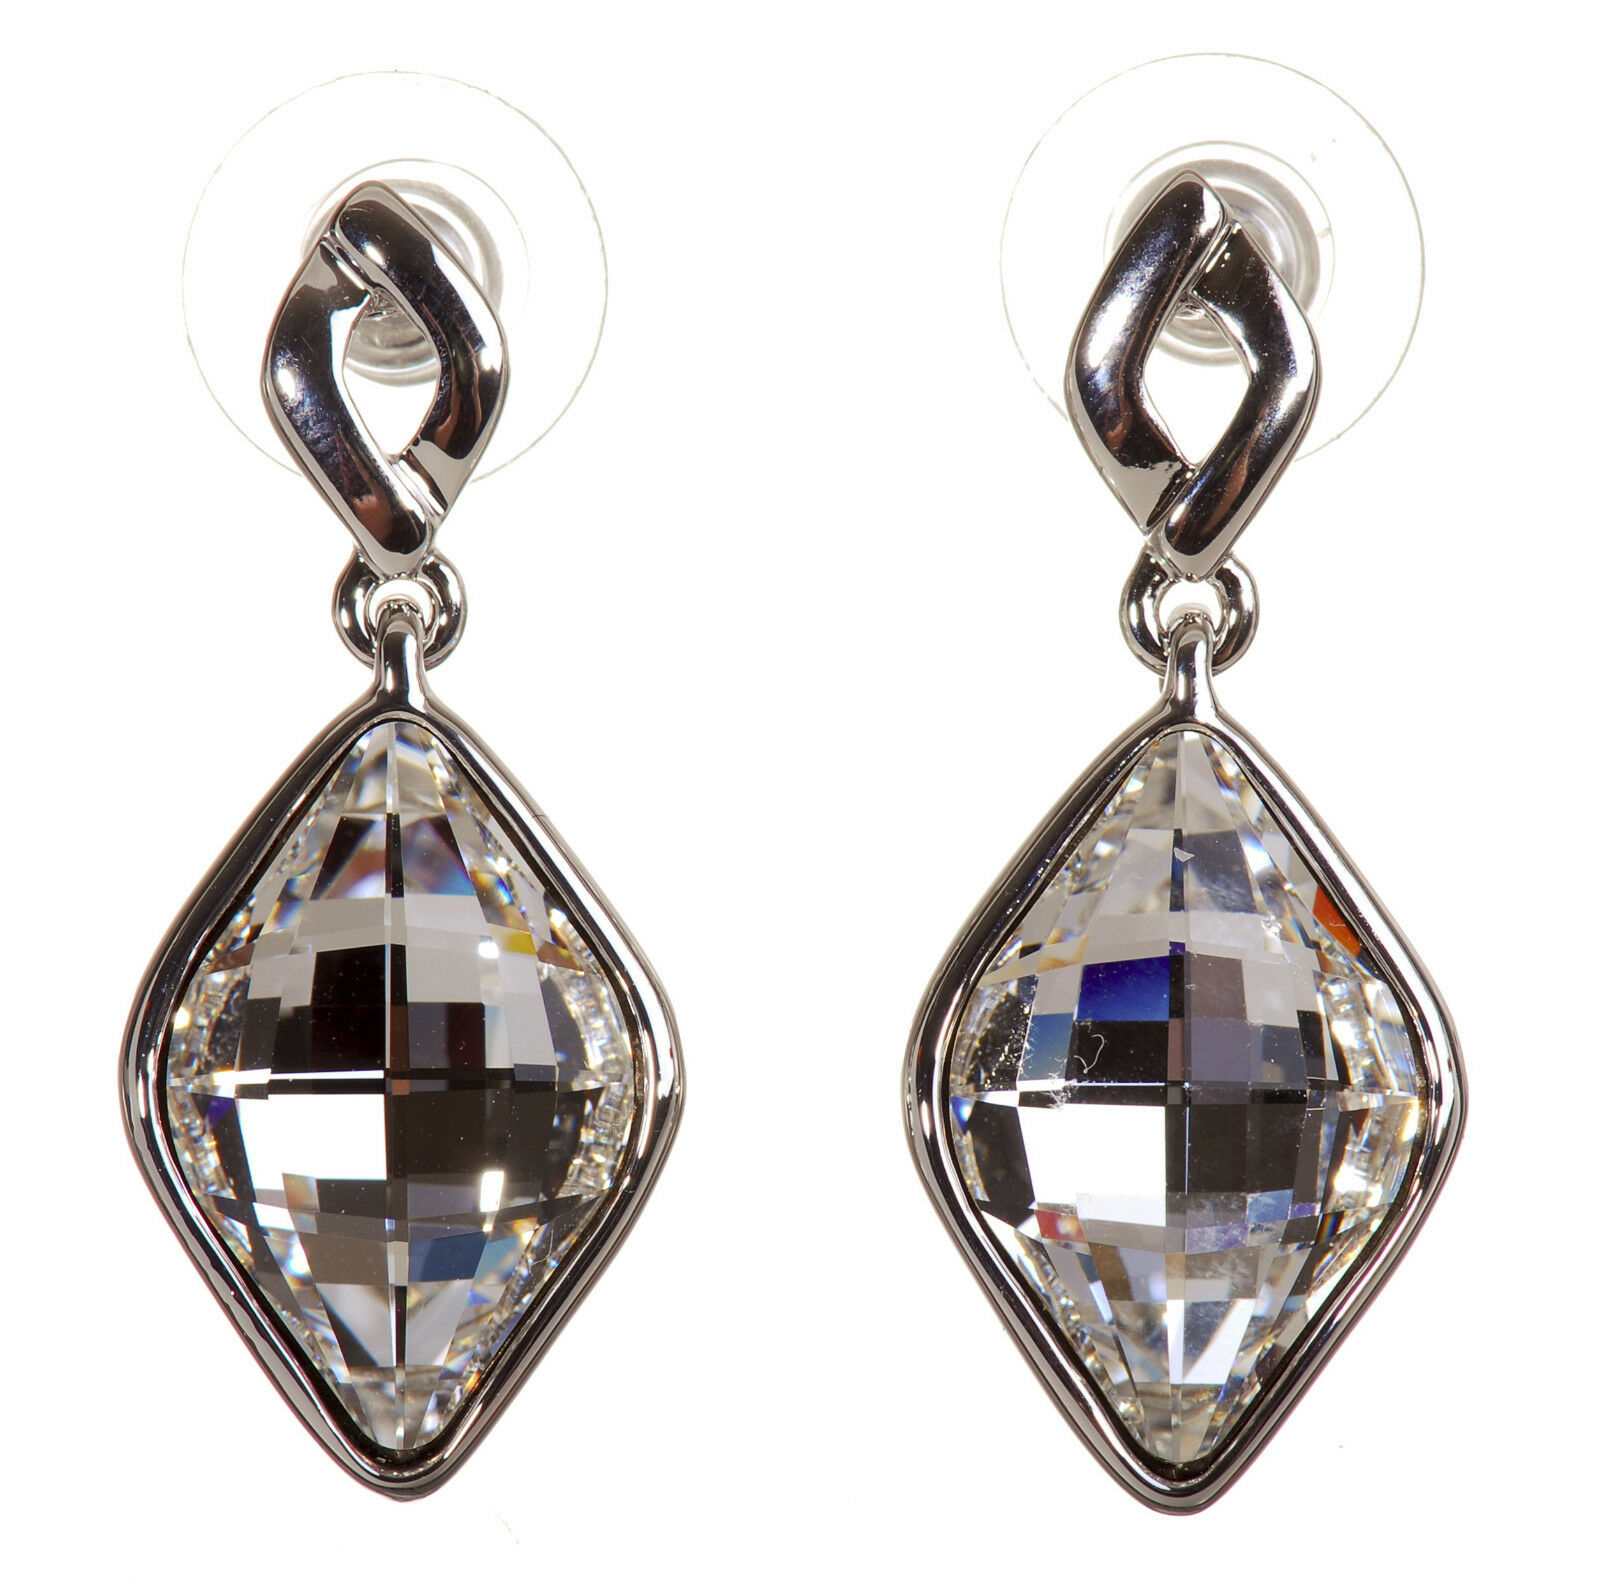 Swarovski Elements Crystal Mira Rhombus Drop Earrings Rhodium Authentic 7272y